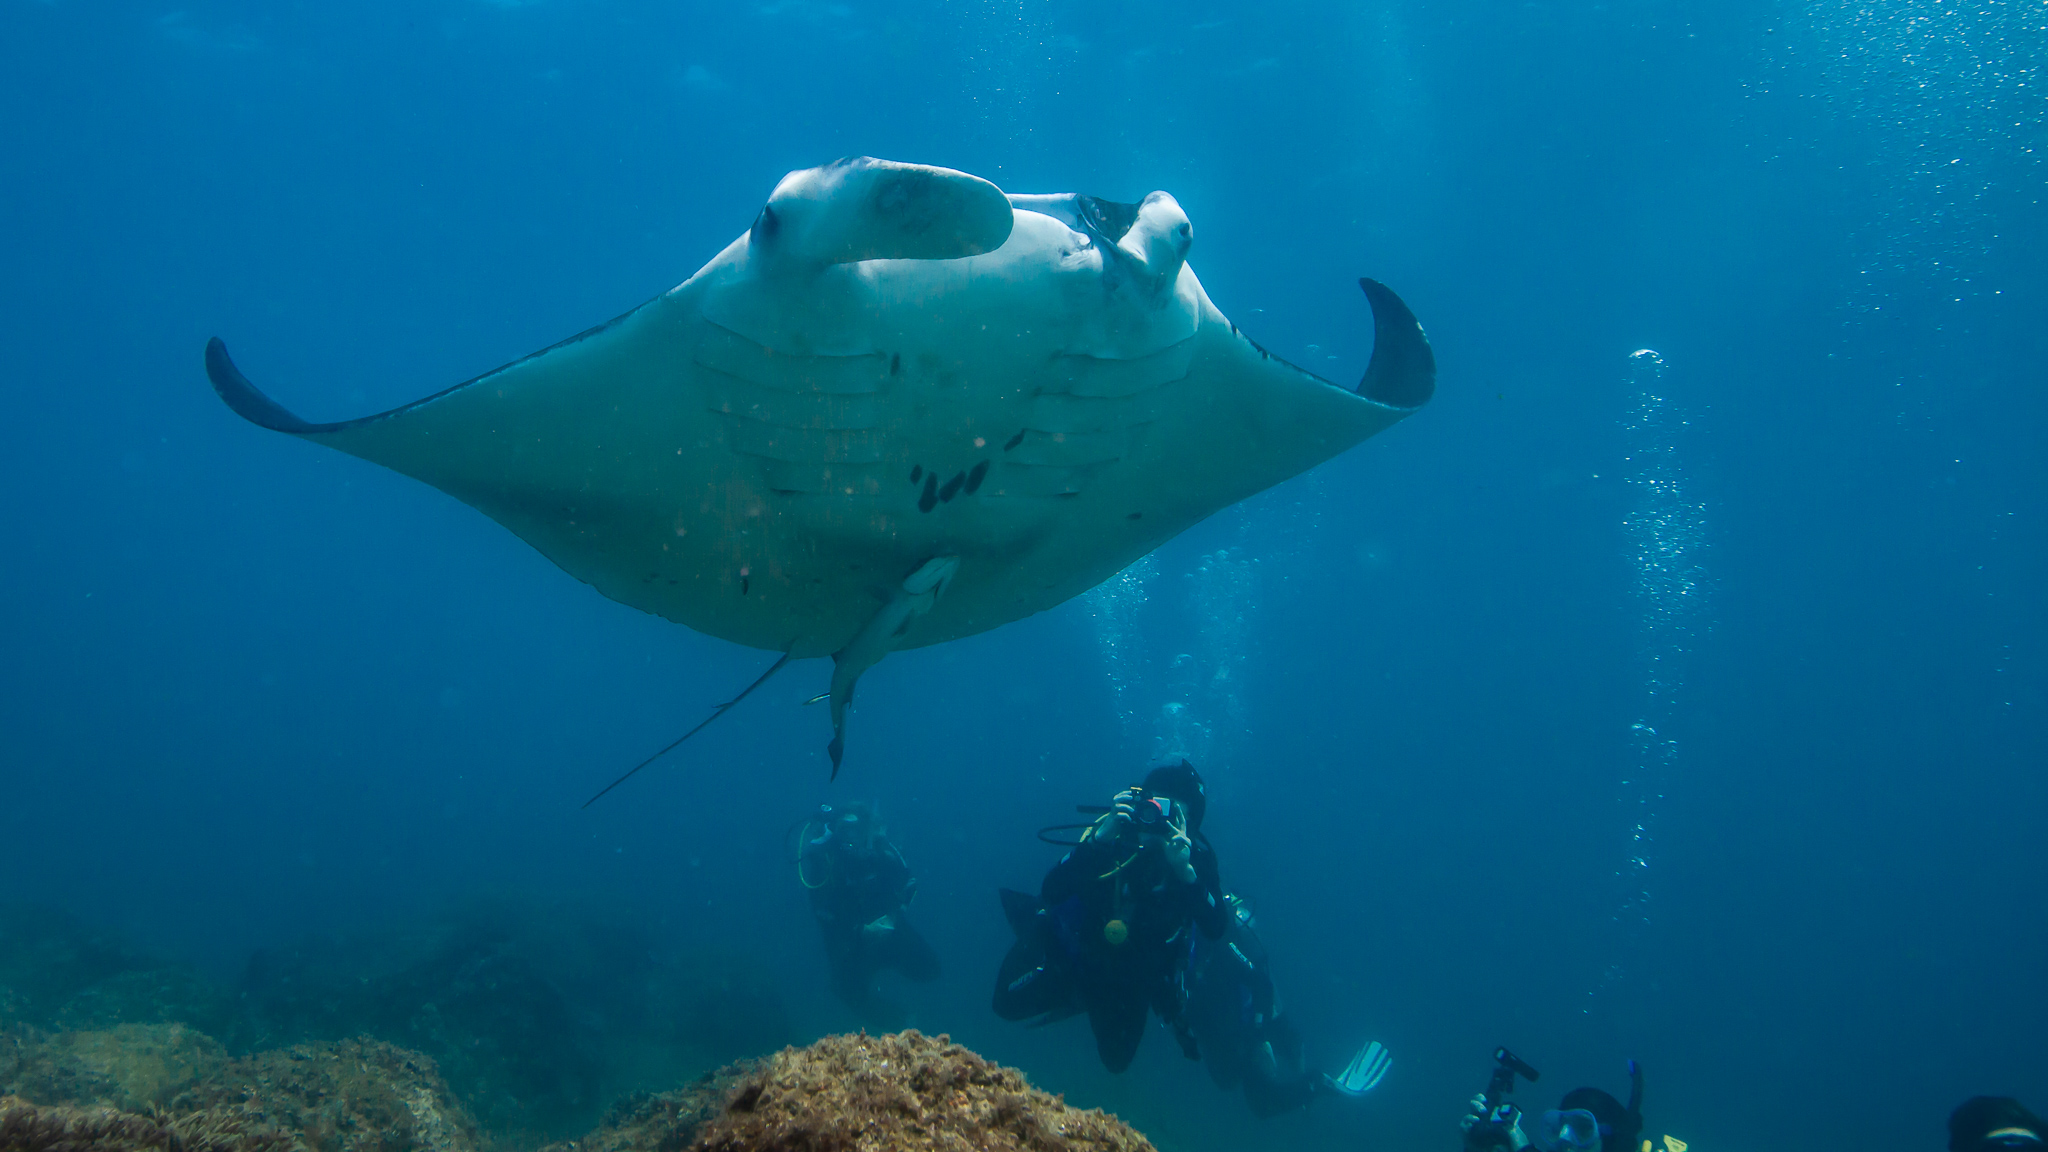 Manta Ray Scuba Diving North Stradbroke Island Queensland Australia